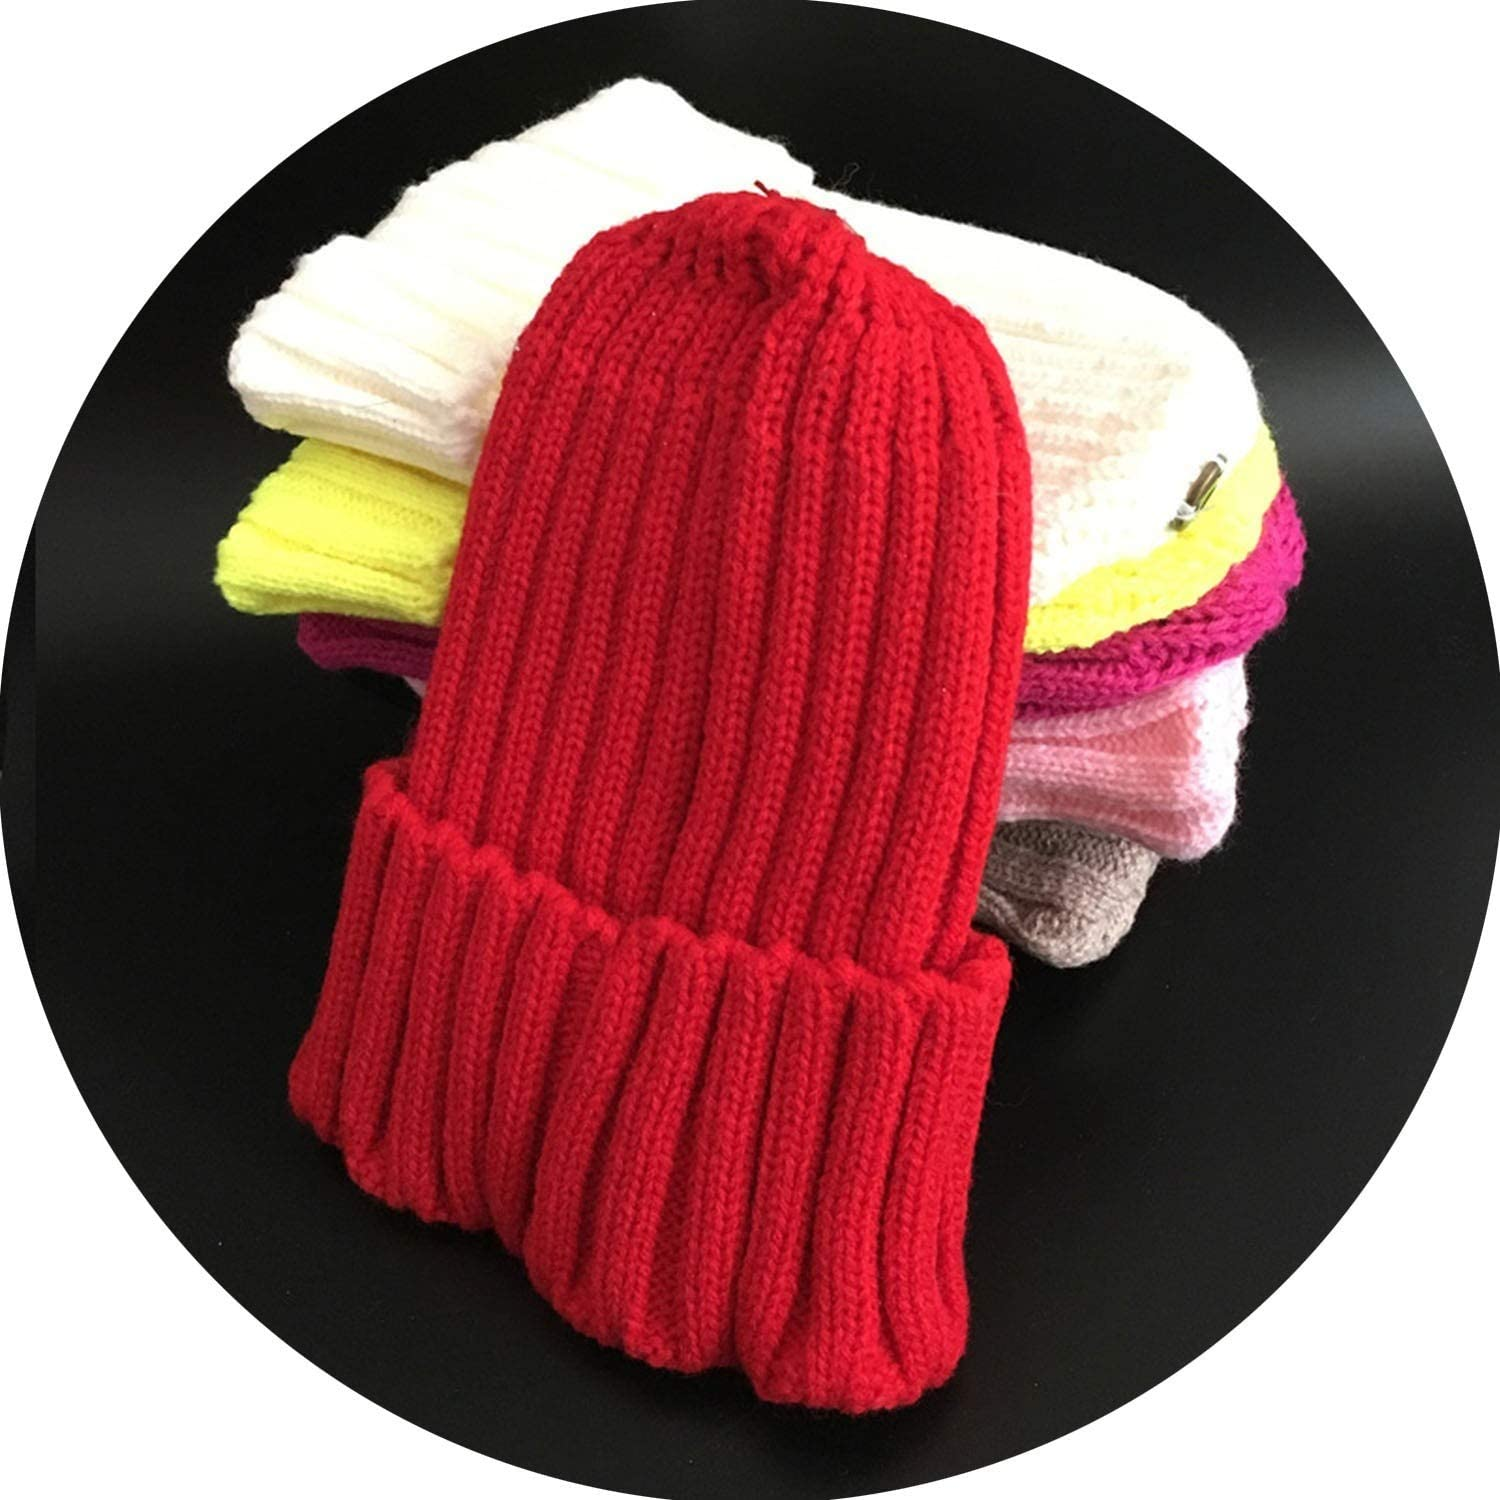 Female Fur Pom Poms hat Winter Hat for Women Girl s Hat Knitted Beanies Cap Hat,red,Kid Size